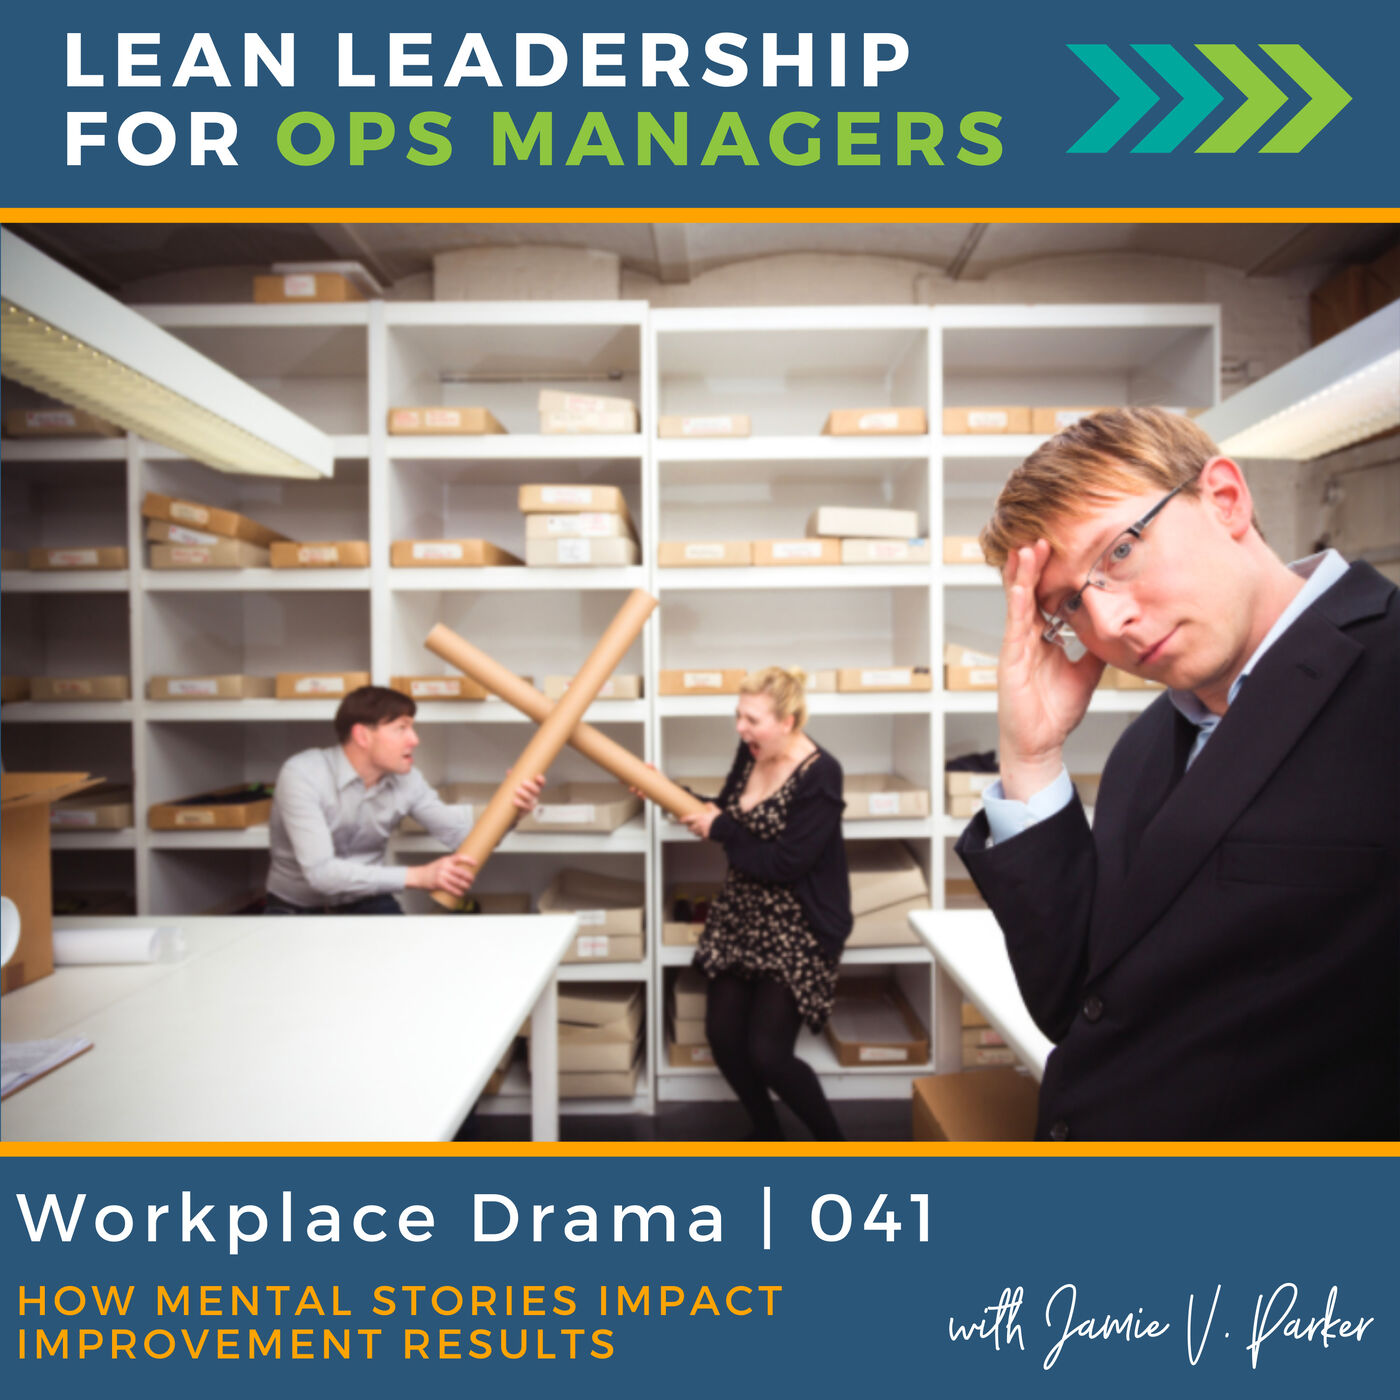 Workplace Drama: How Mental Stories Impact Improvement Results   041